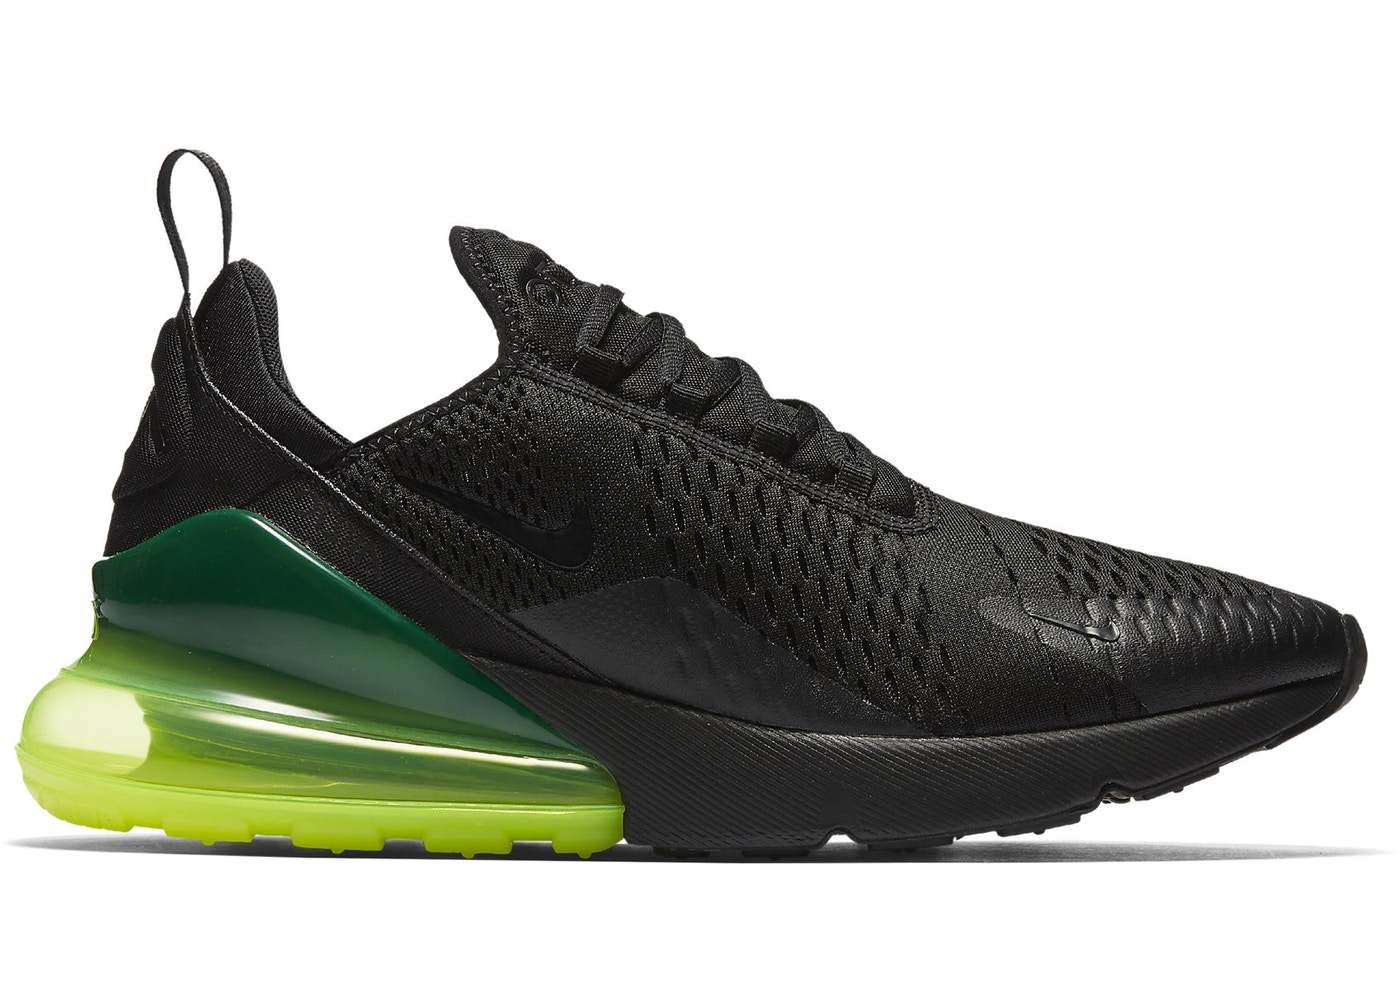 Nike Air Max Shoes - New Lowest Asks 93a8131b00